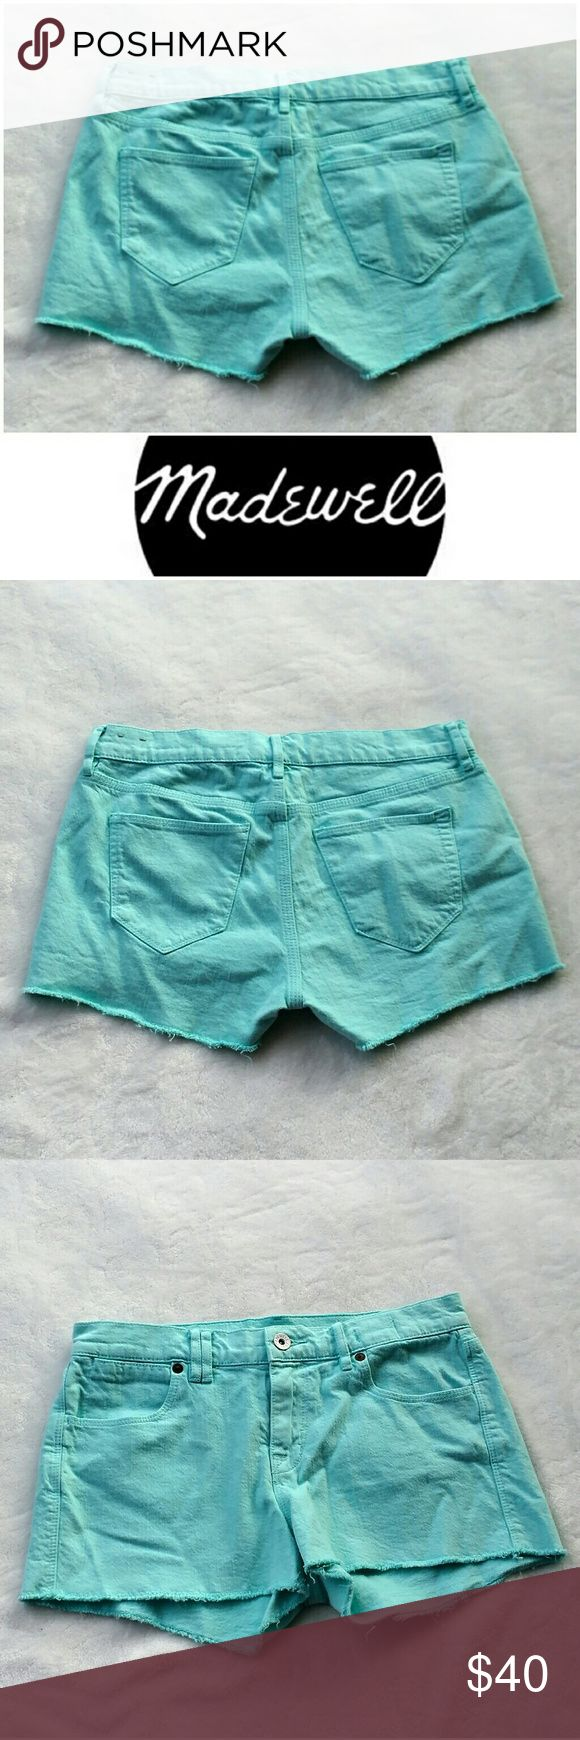 "Madewell turquoise teal shorts Adorable, bright and fun shorts from Madewell.   Like new!   2"" inseam. Size 26.  Let me know if you have any questions! Open to offers and bundle discount available. Madewell Shorts"